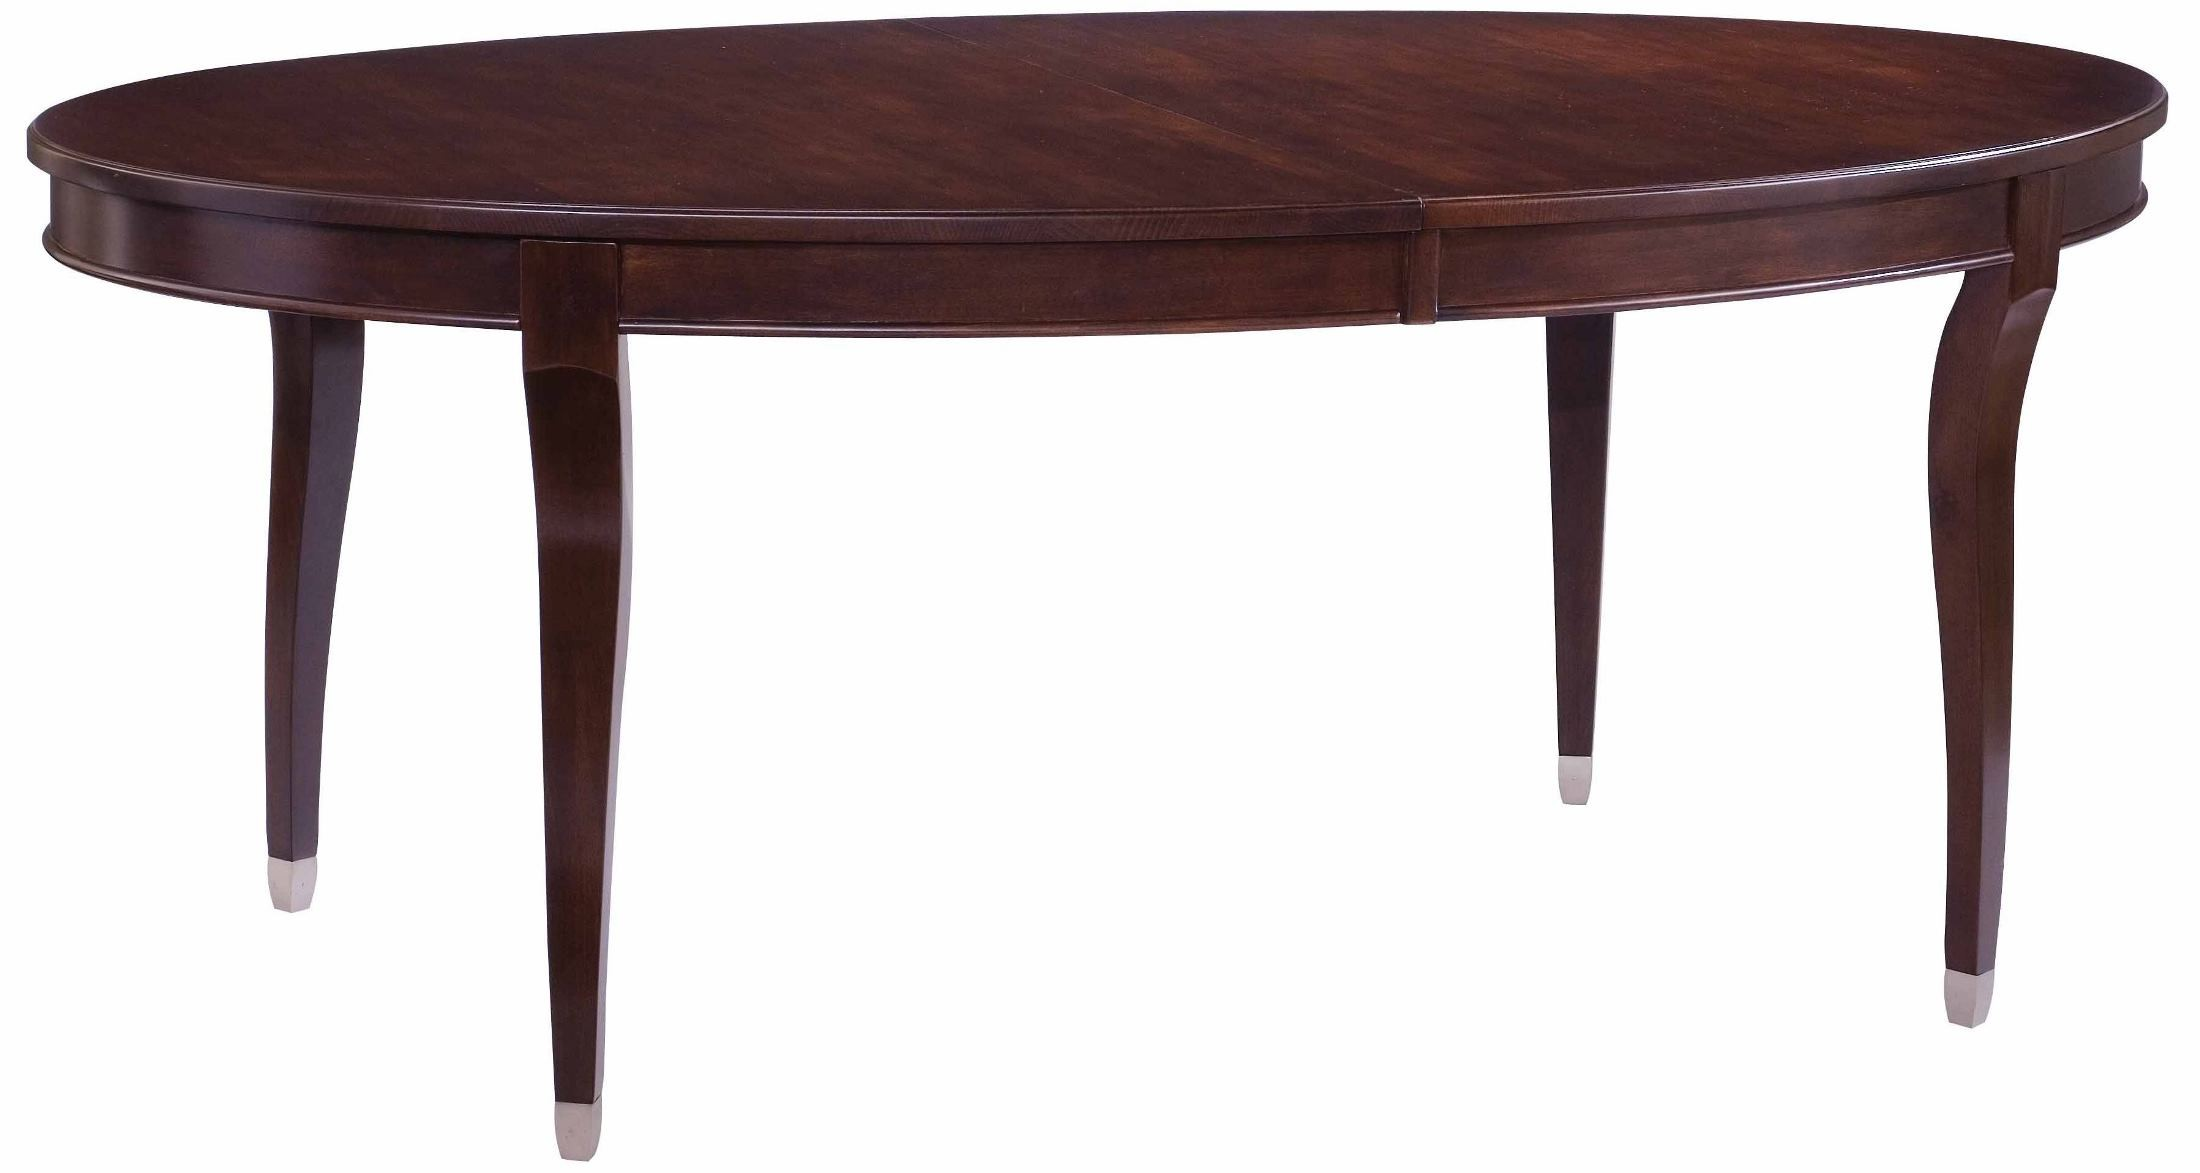 Alston Oval Extendable Leg Dining Table from Kincaid 92  : 92 054silo from colemanfurniture.com size 2200 x 1173 jpeg 157kB